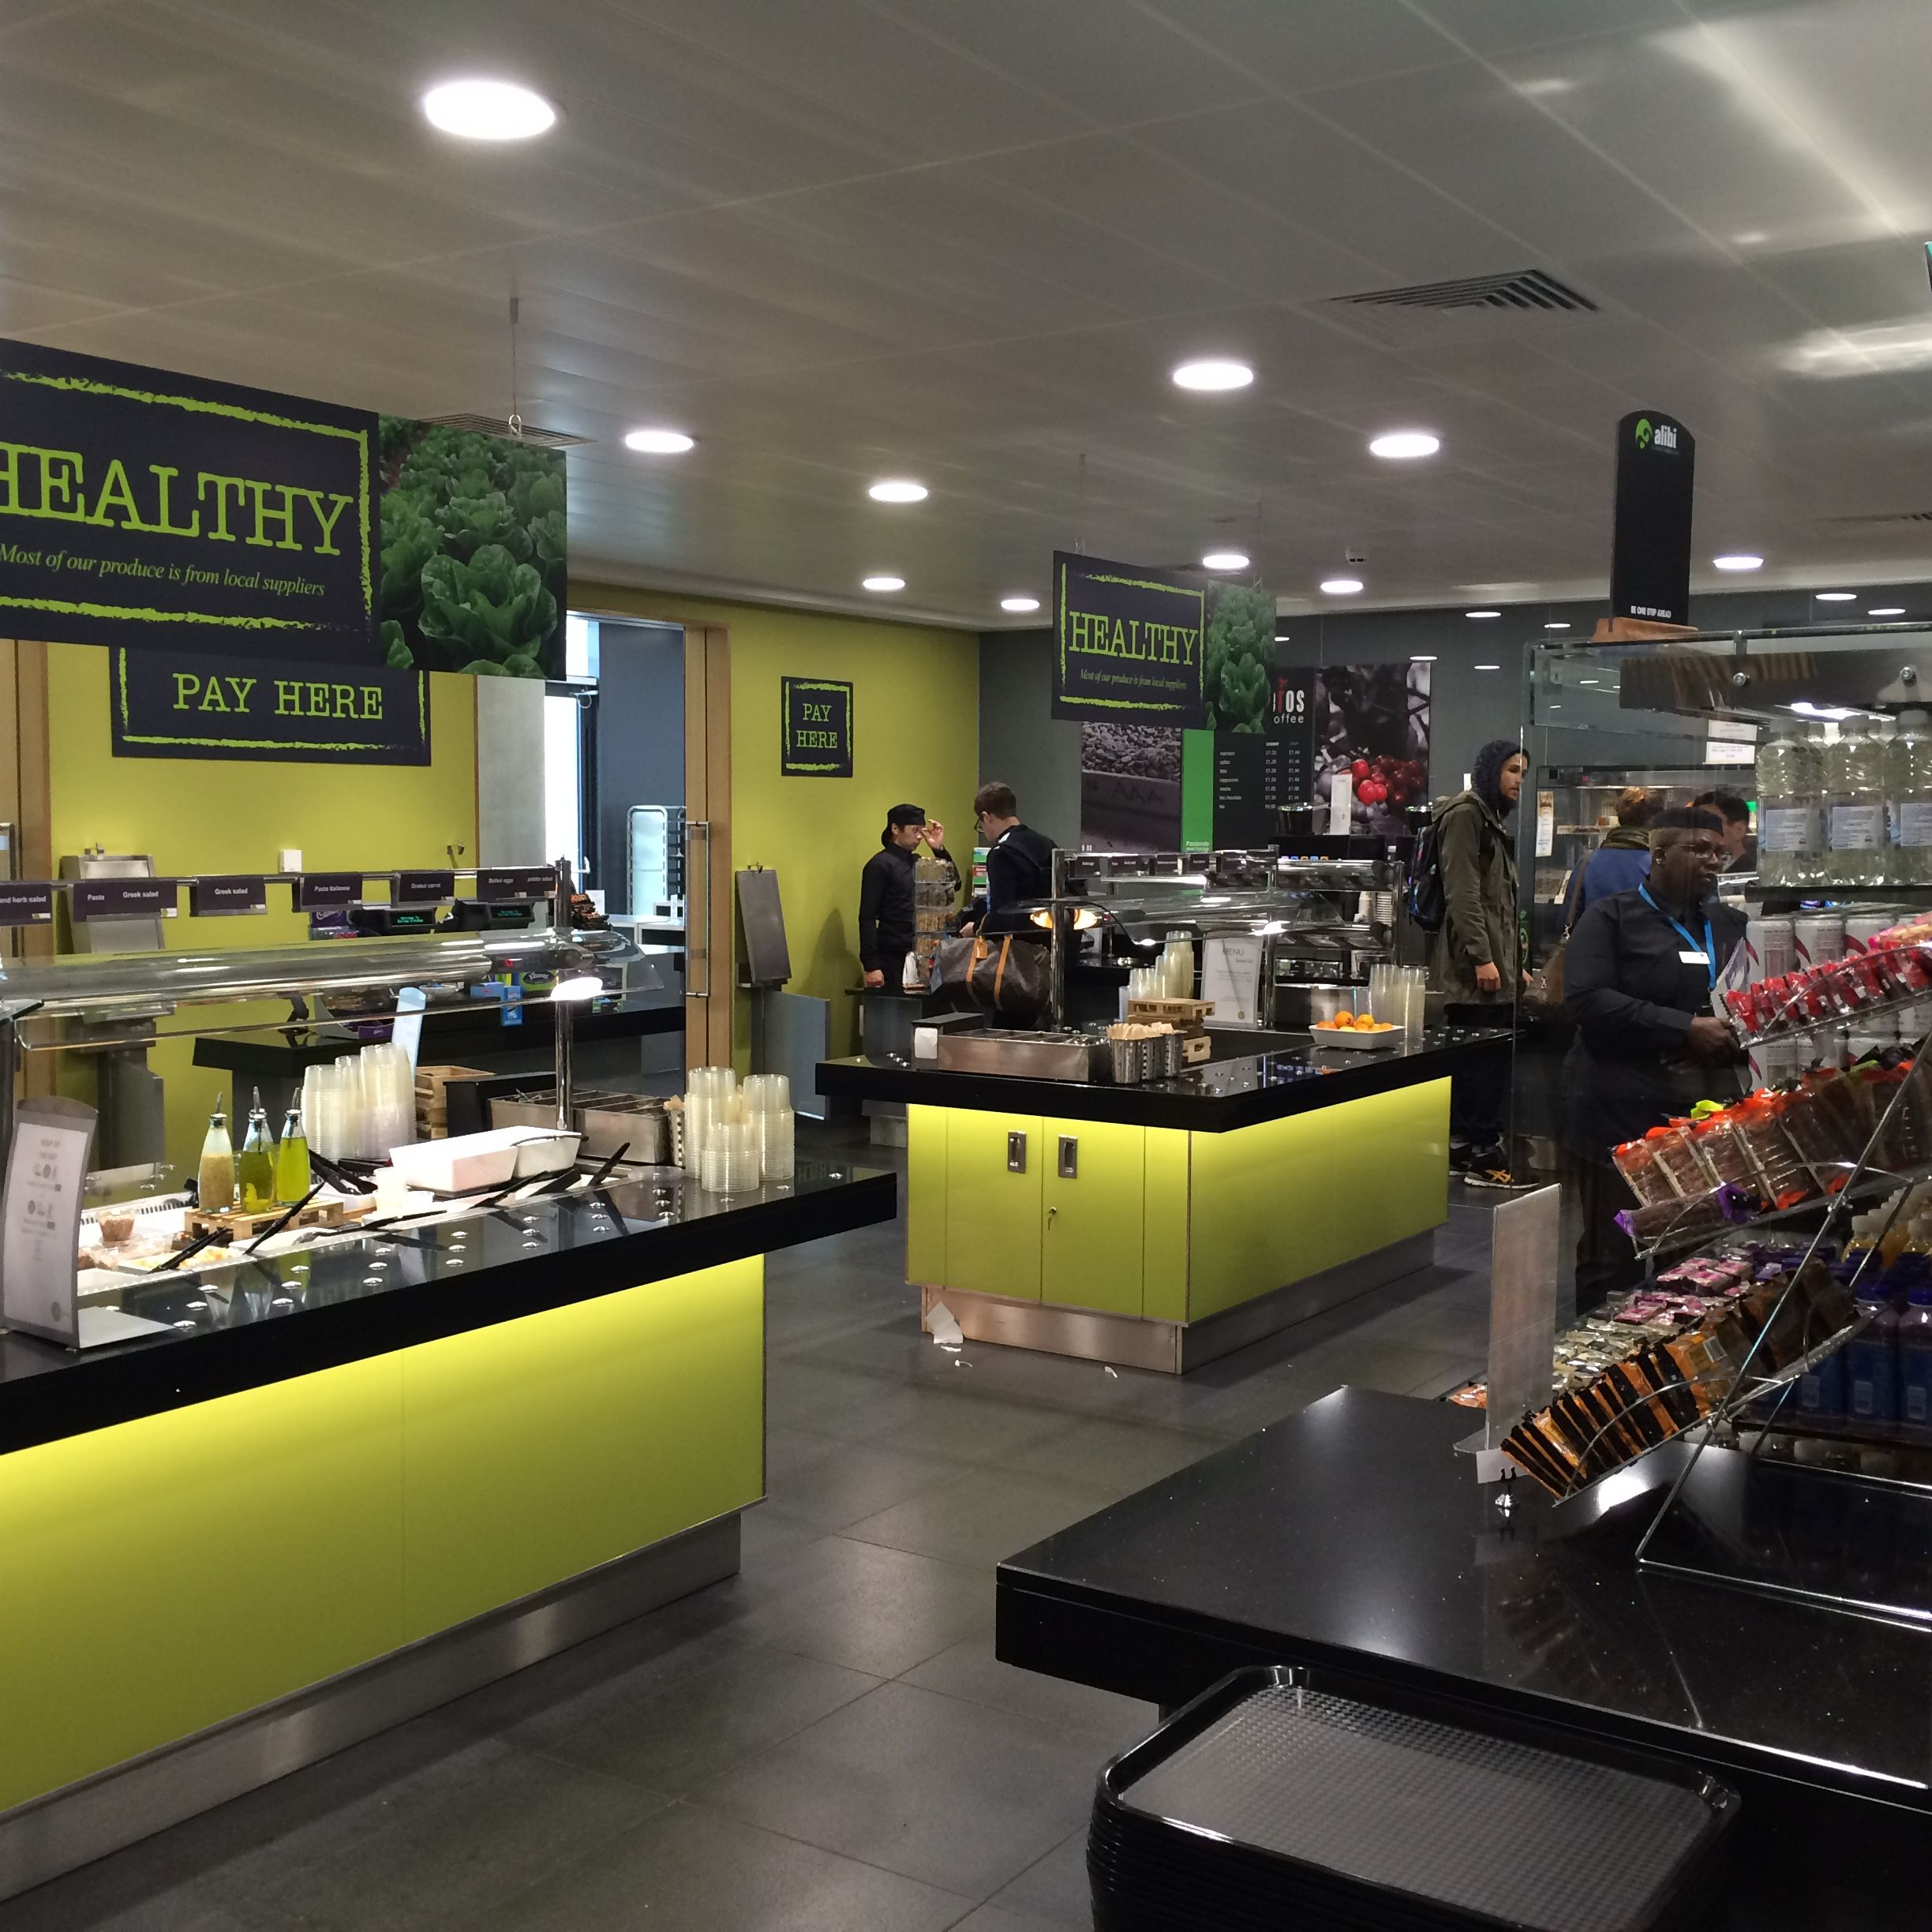 Pin by Tony D on BIRLEY FIELDS MANCHESTER Kitchen